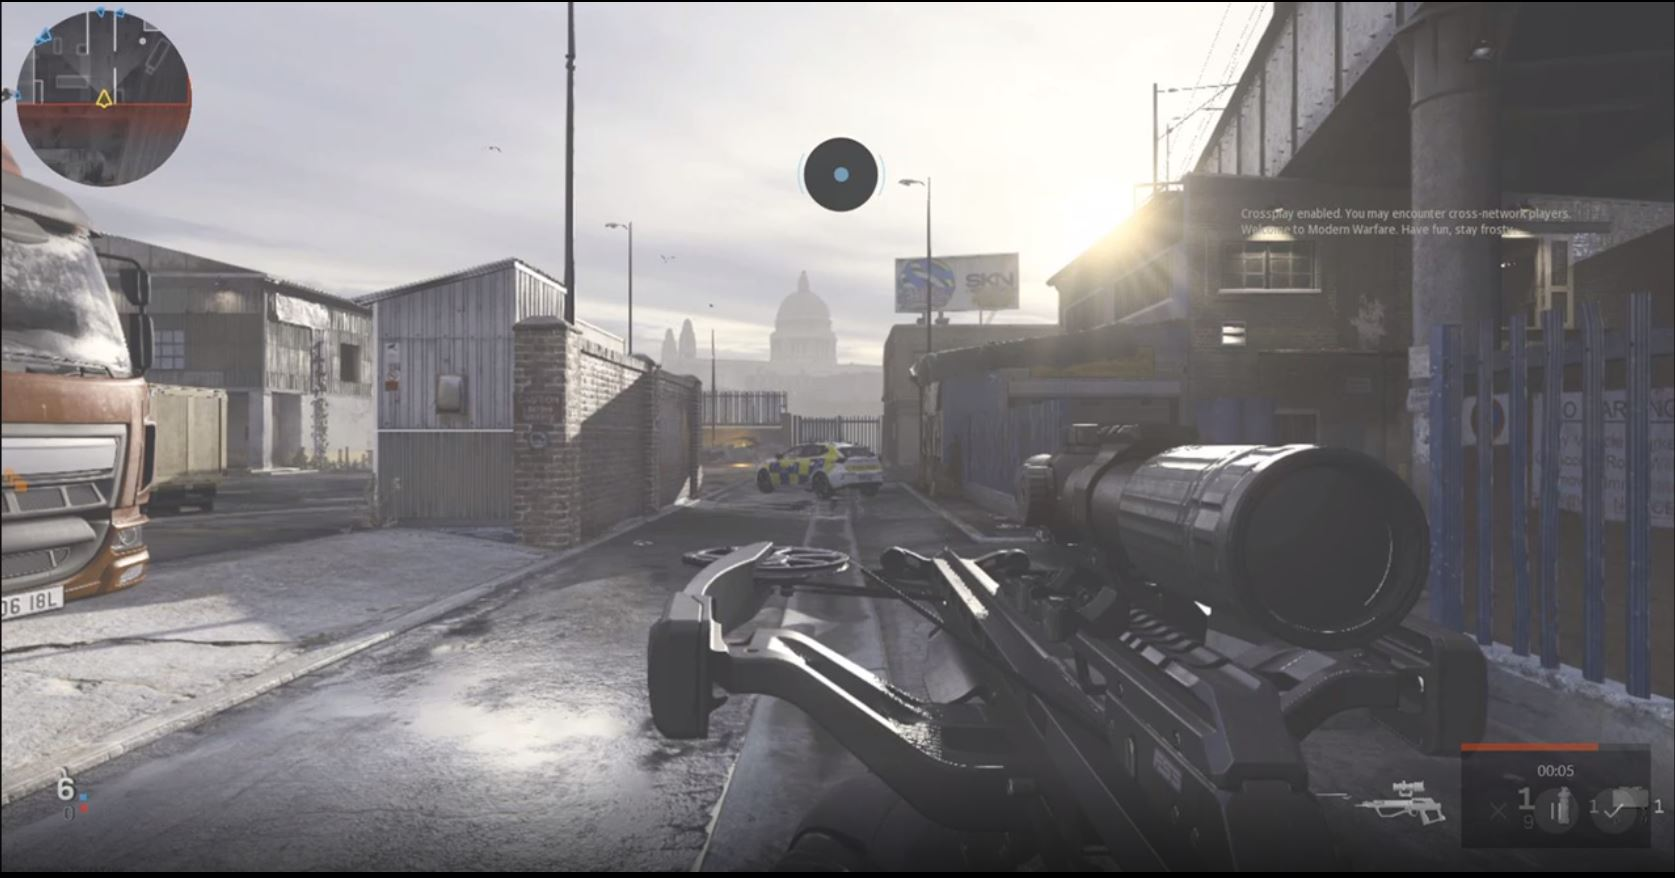 Crossbow Vector Infected Leaked In Modern Warfare Patch Files